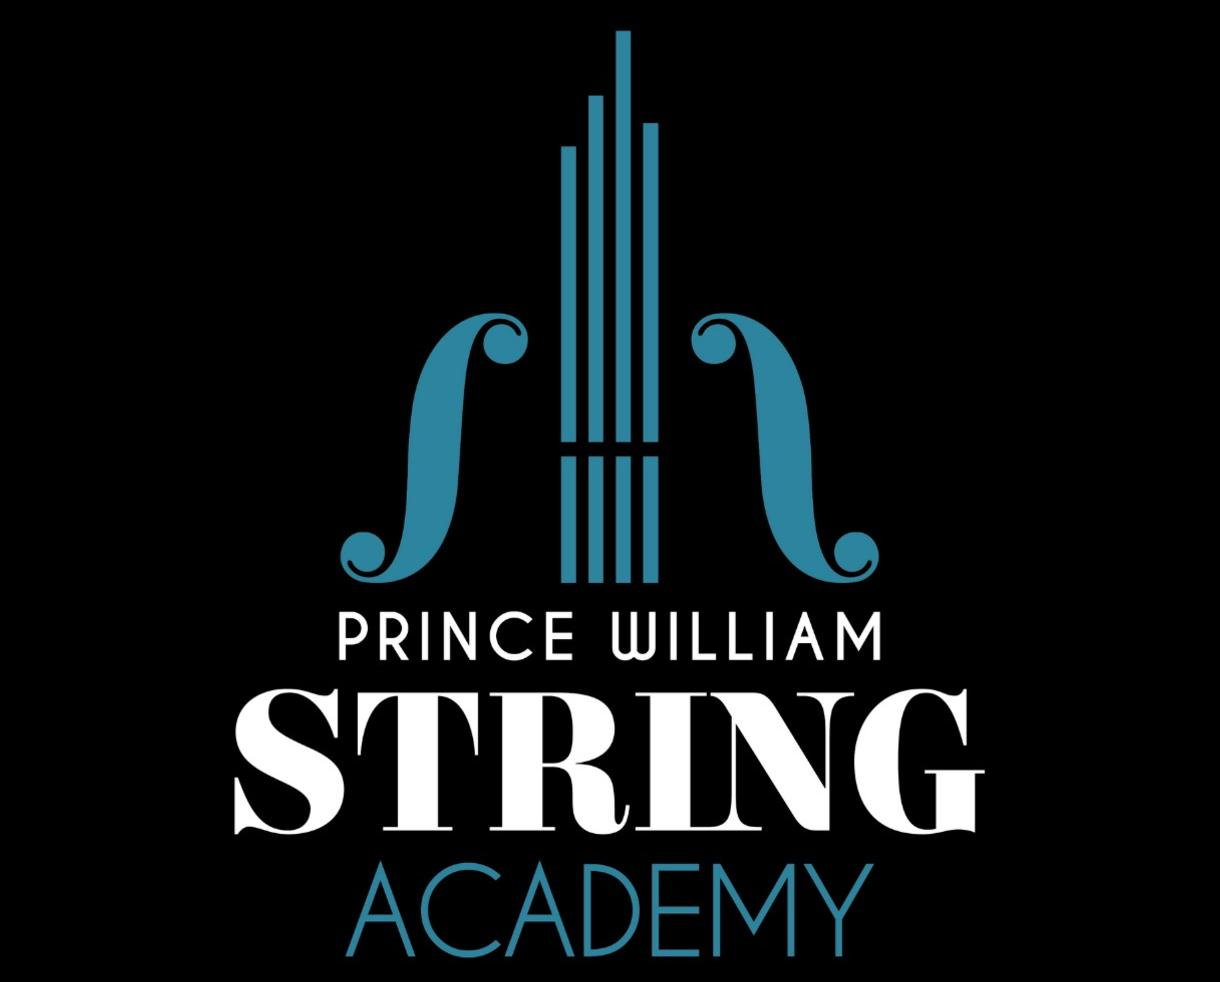 $98 for 4 PRIVATE Violin or Cello Stringbabies Lessons at Prince William String Academy for Ages 3-6 - Manassas ($42 Off)